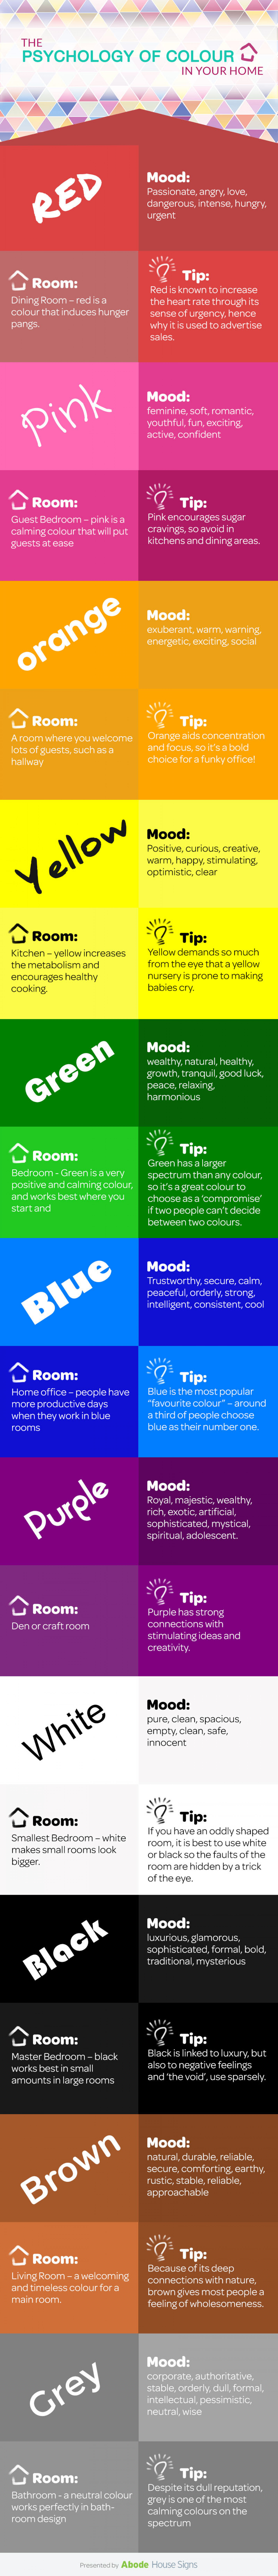 The Psychology of Colour in Your Home Infographic